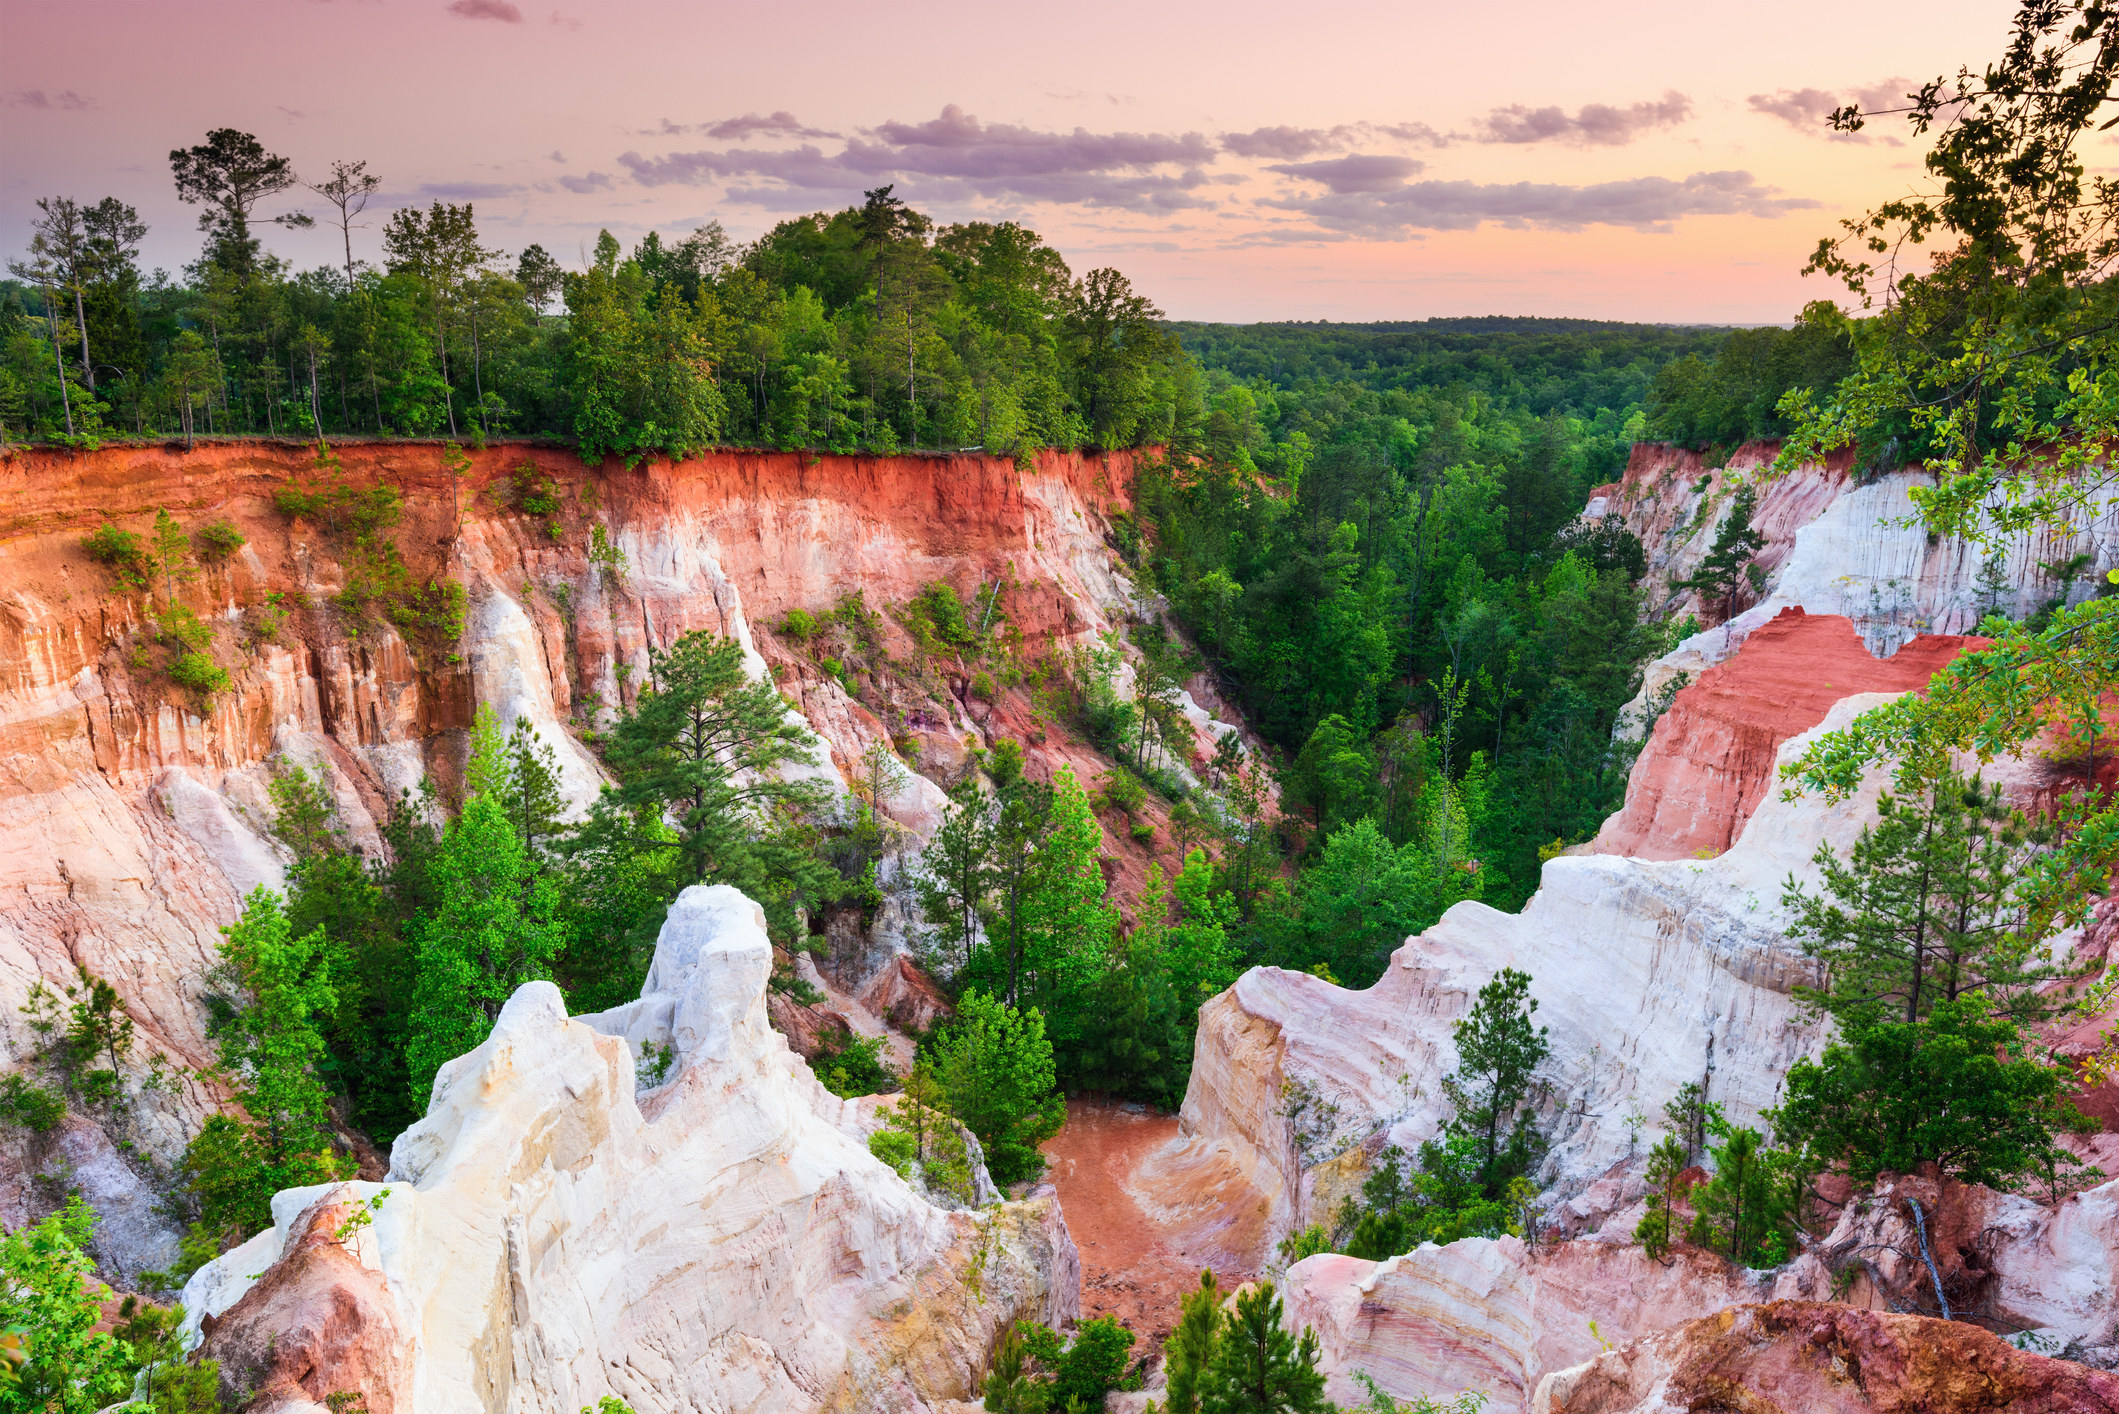 Red and white canyons covered with lush green trees